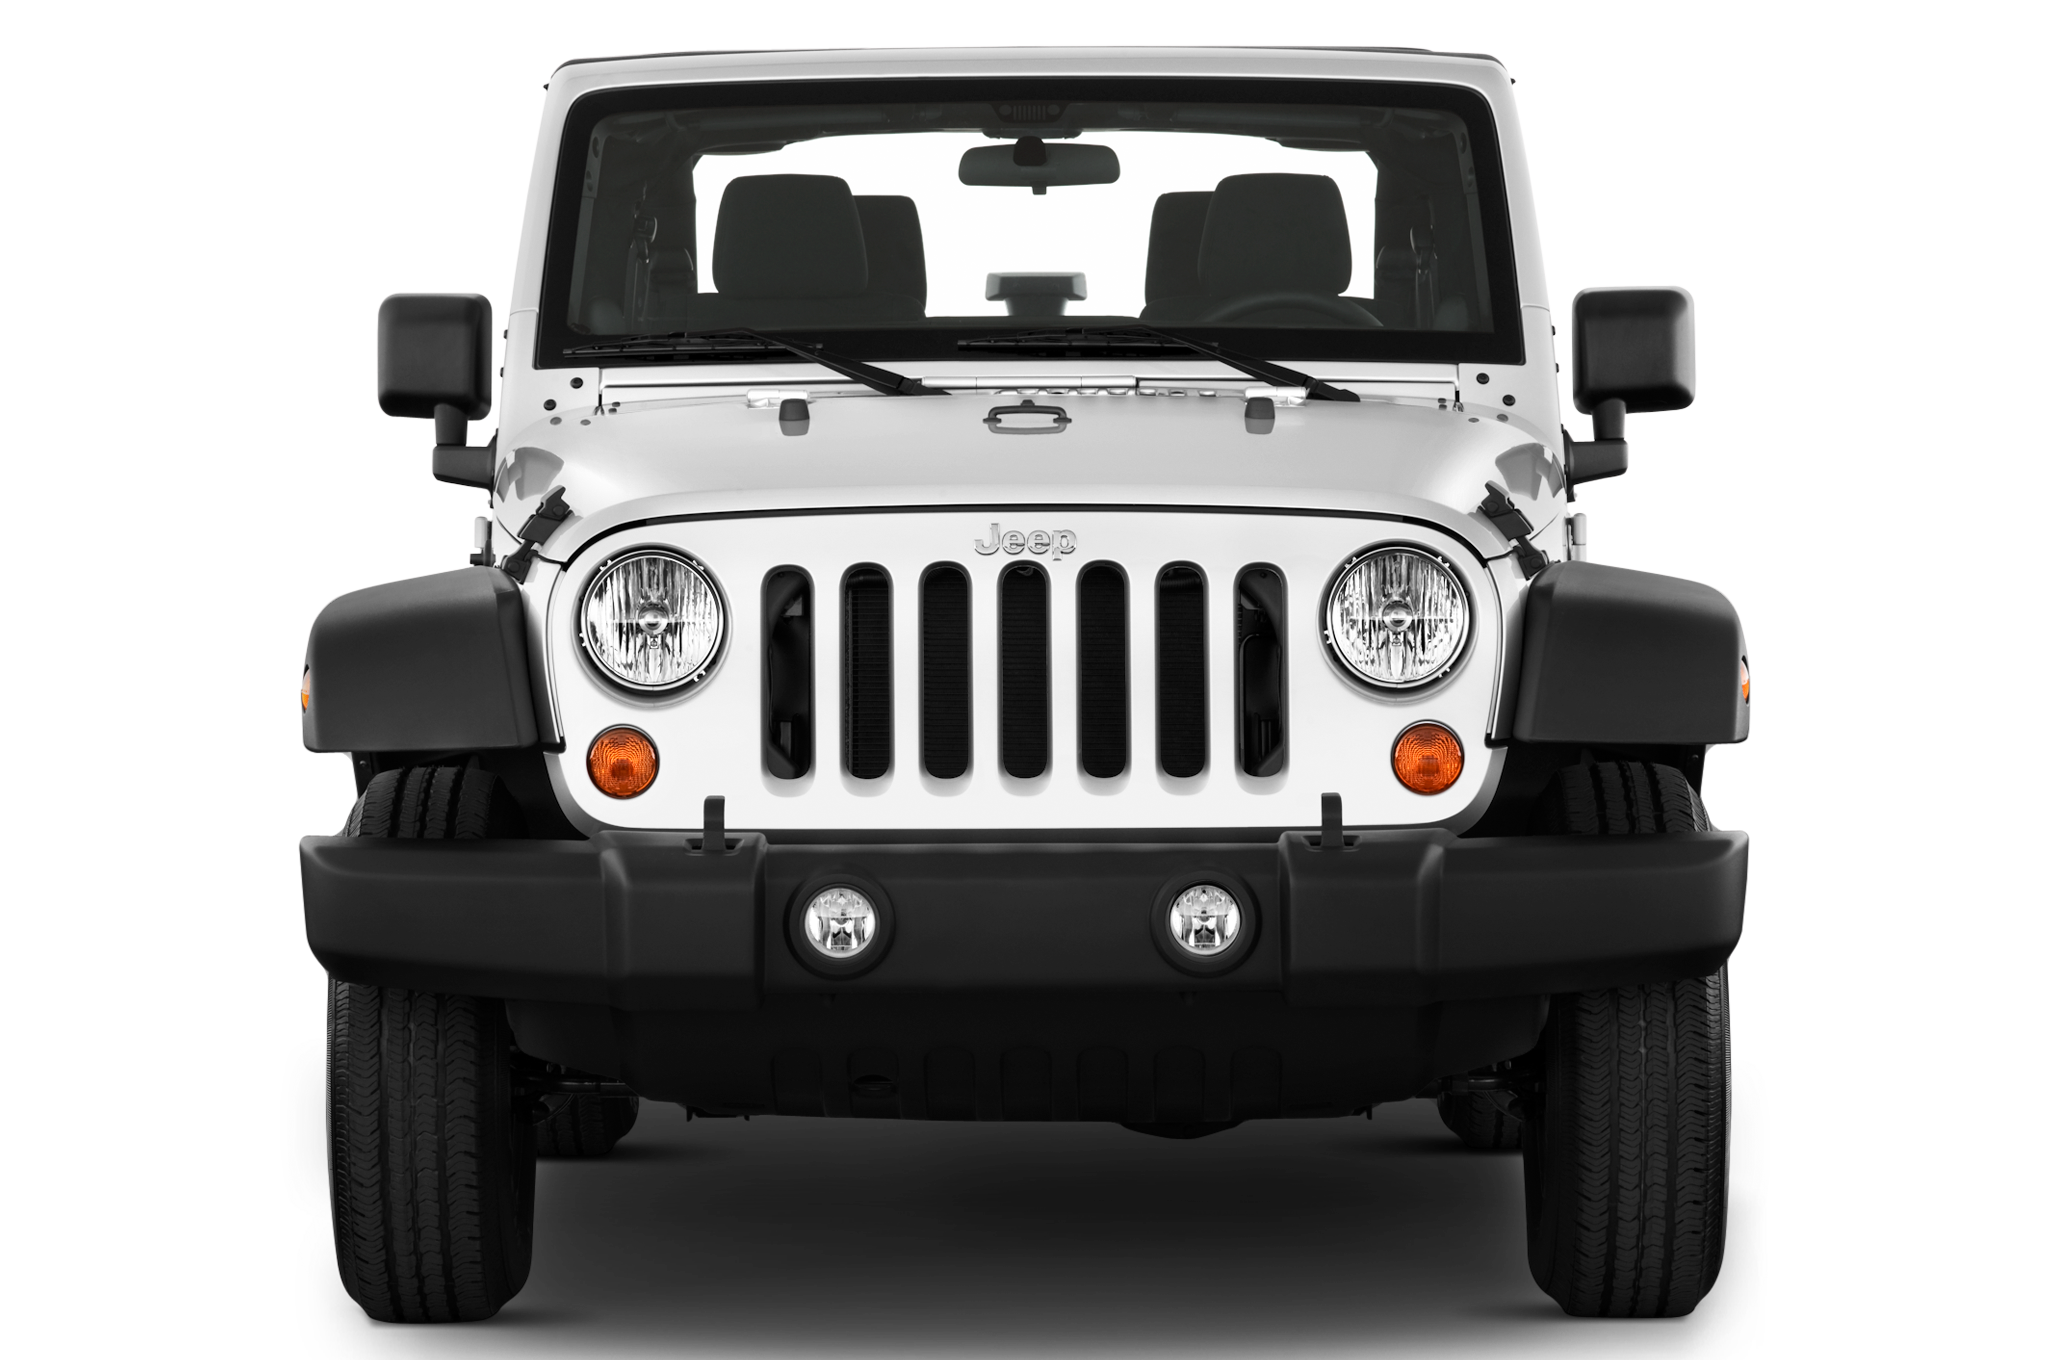 Dodge Dealer Miami >> 2016 Jeep Wrangler Specs | Aventura Chrysler Jeep Dodge Ram